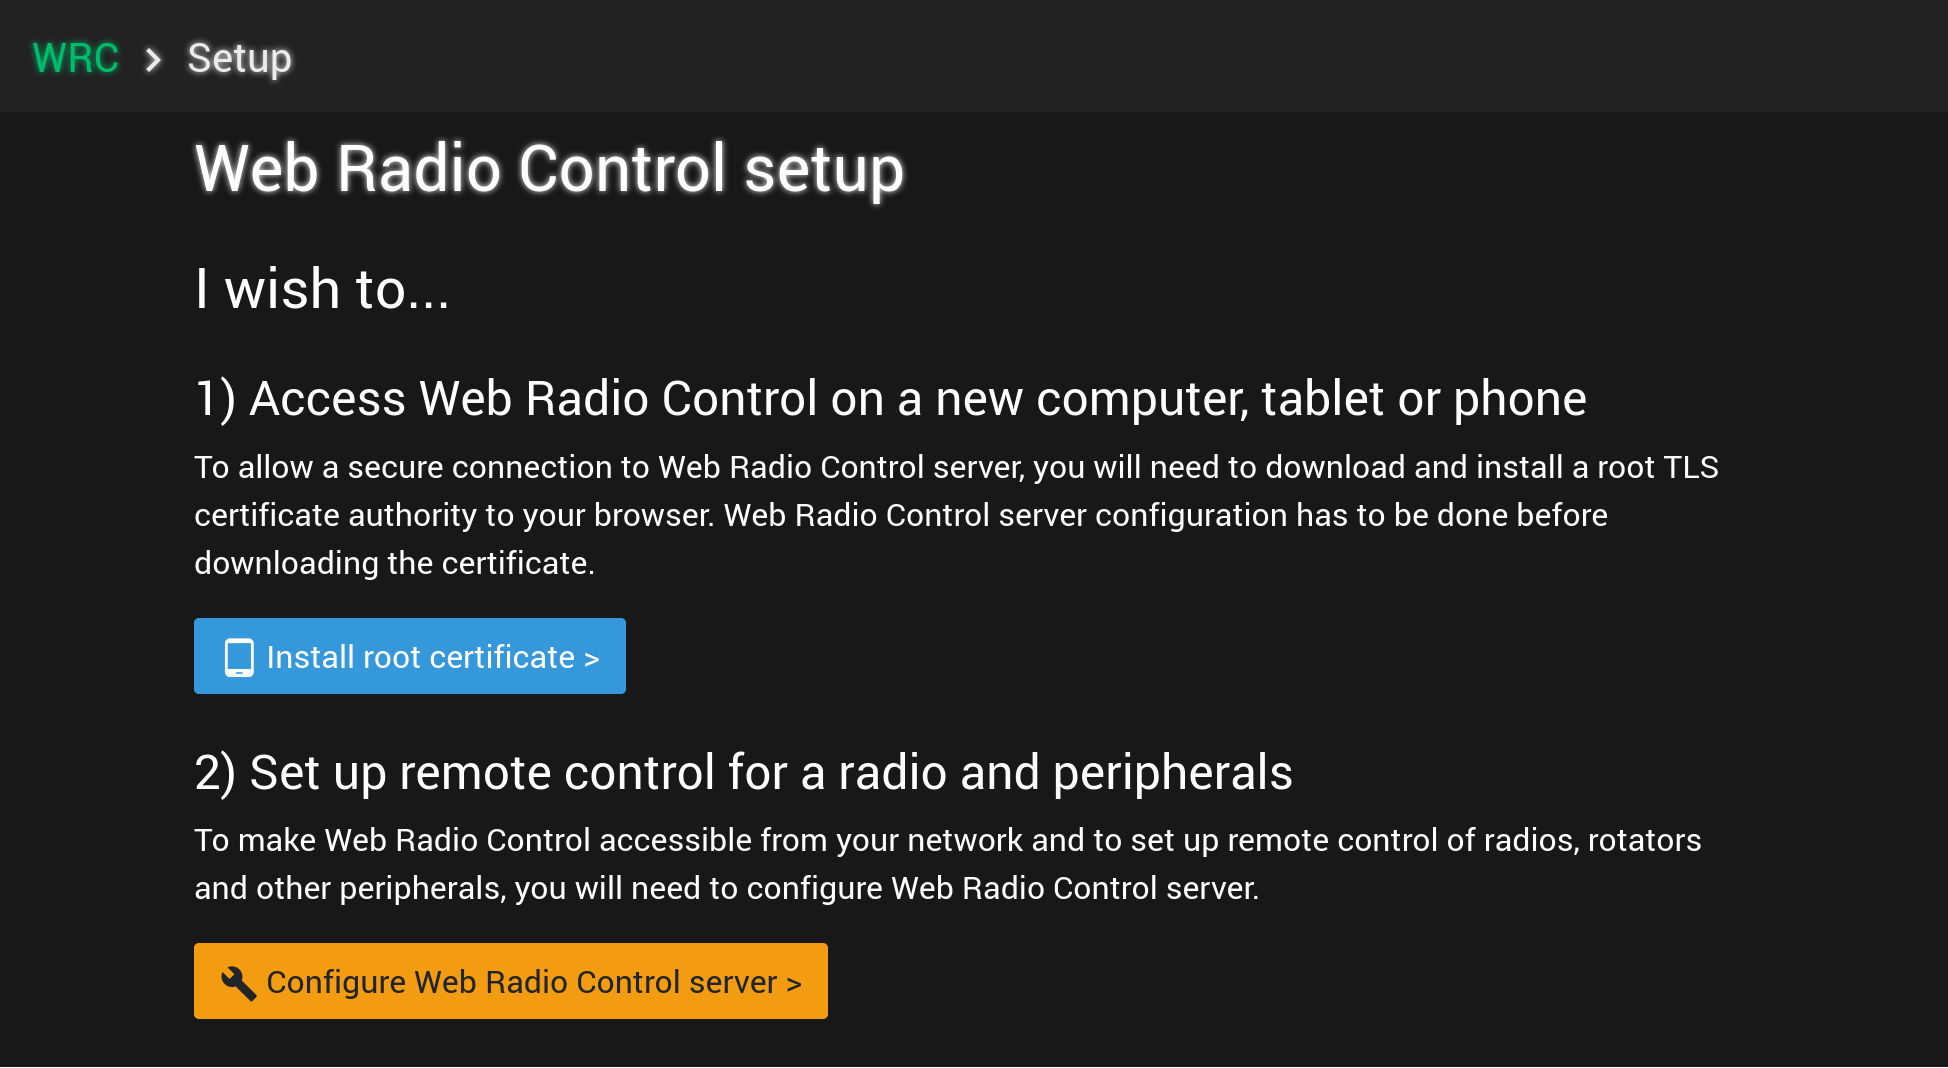 The main screen of Web Radio Control setup user interface